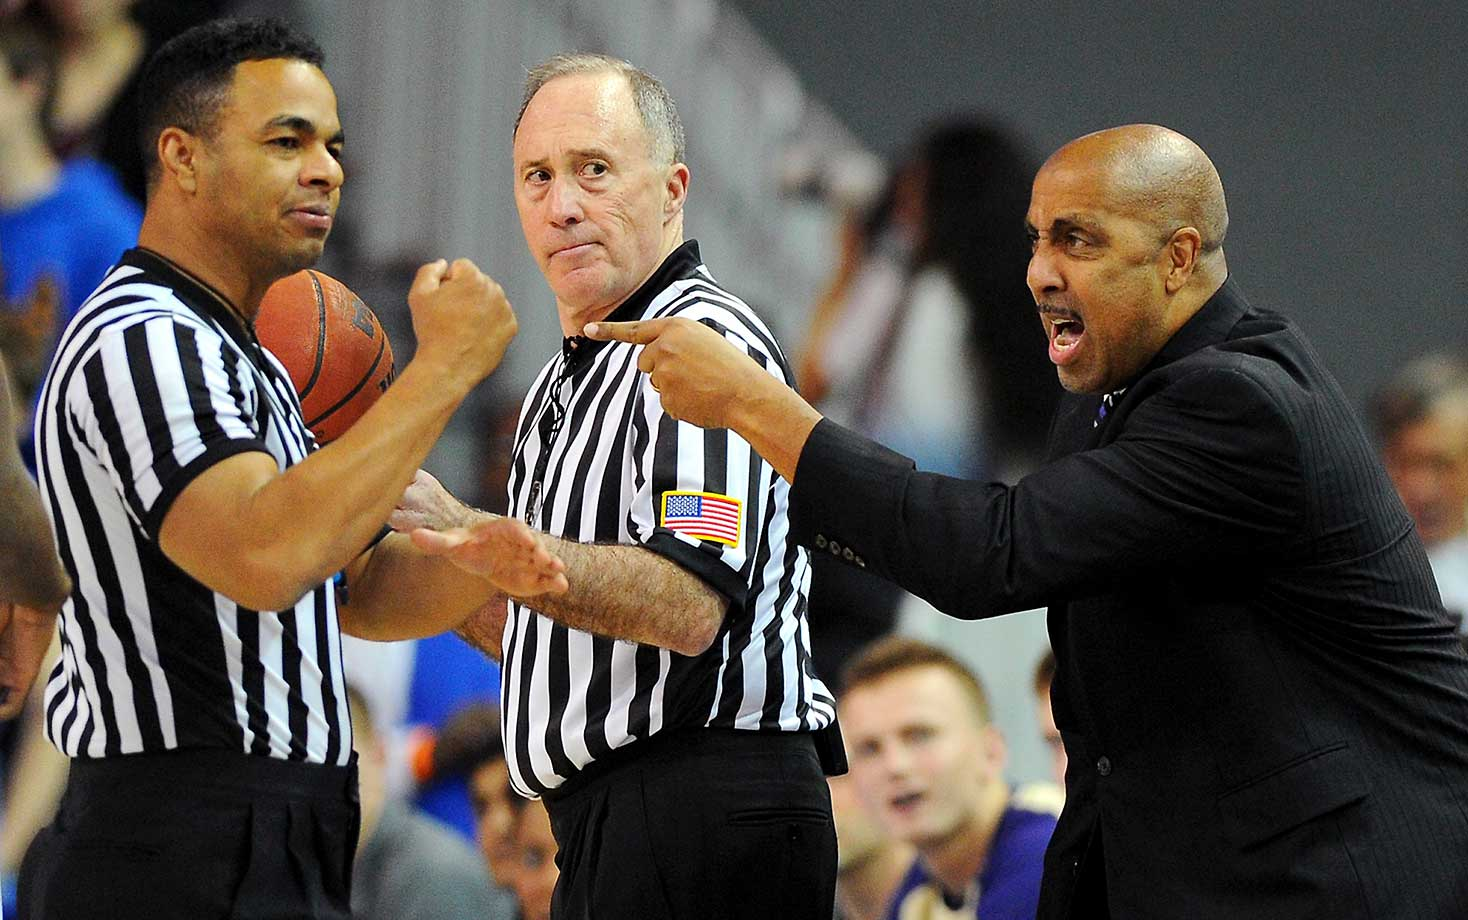 Washington head coach Lorenzo Romar has words with officials in a game against UCLA in Los Angeles.